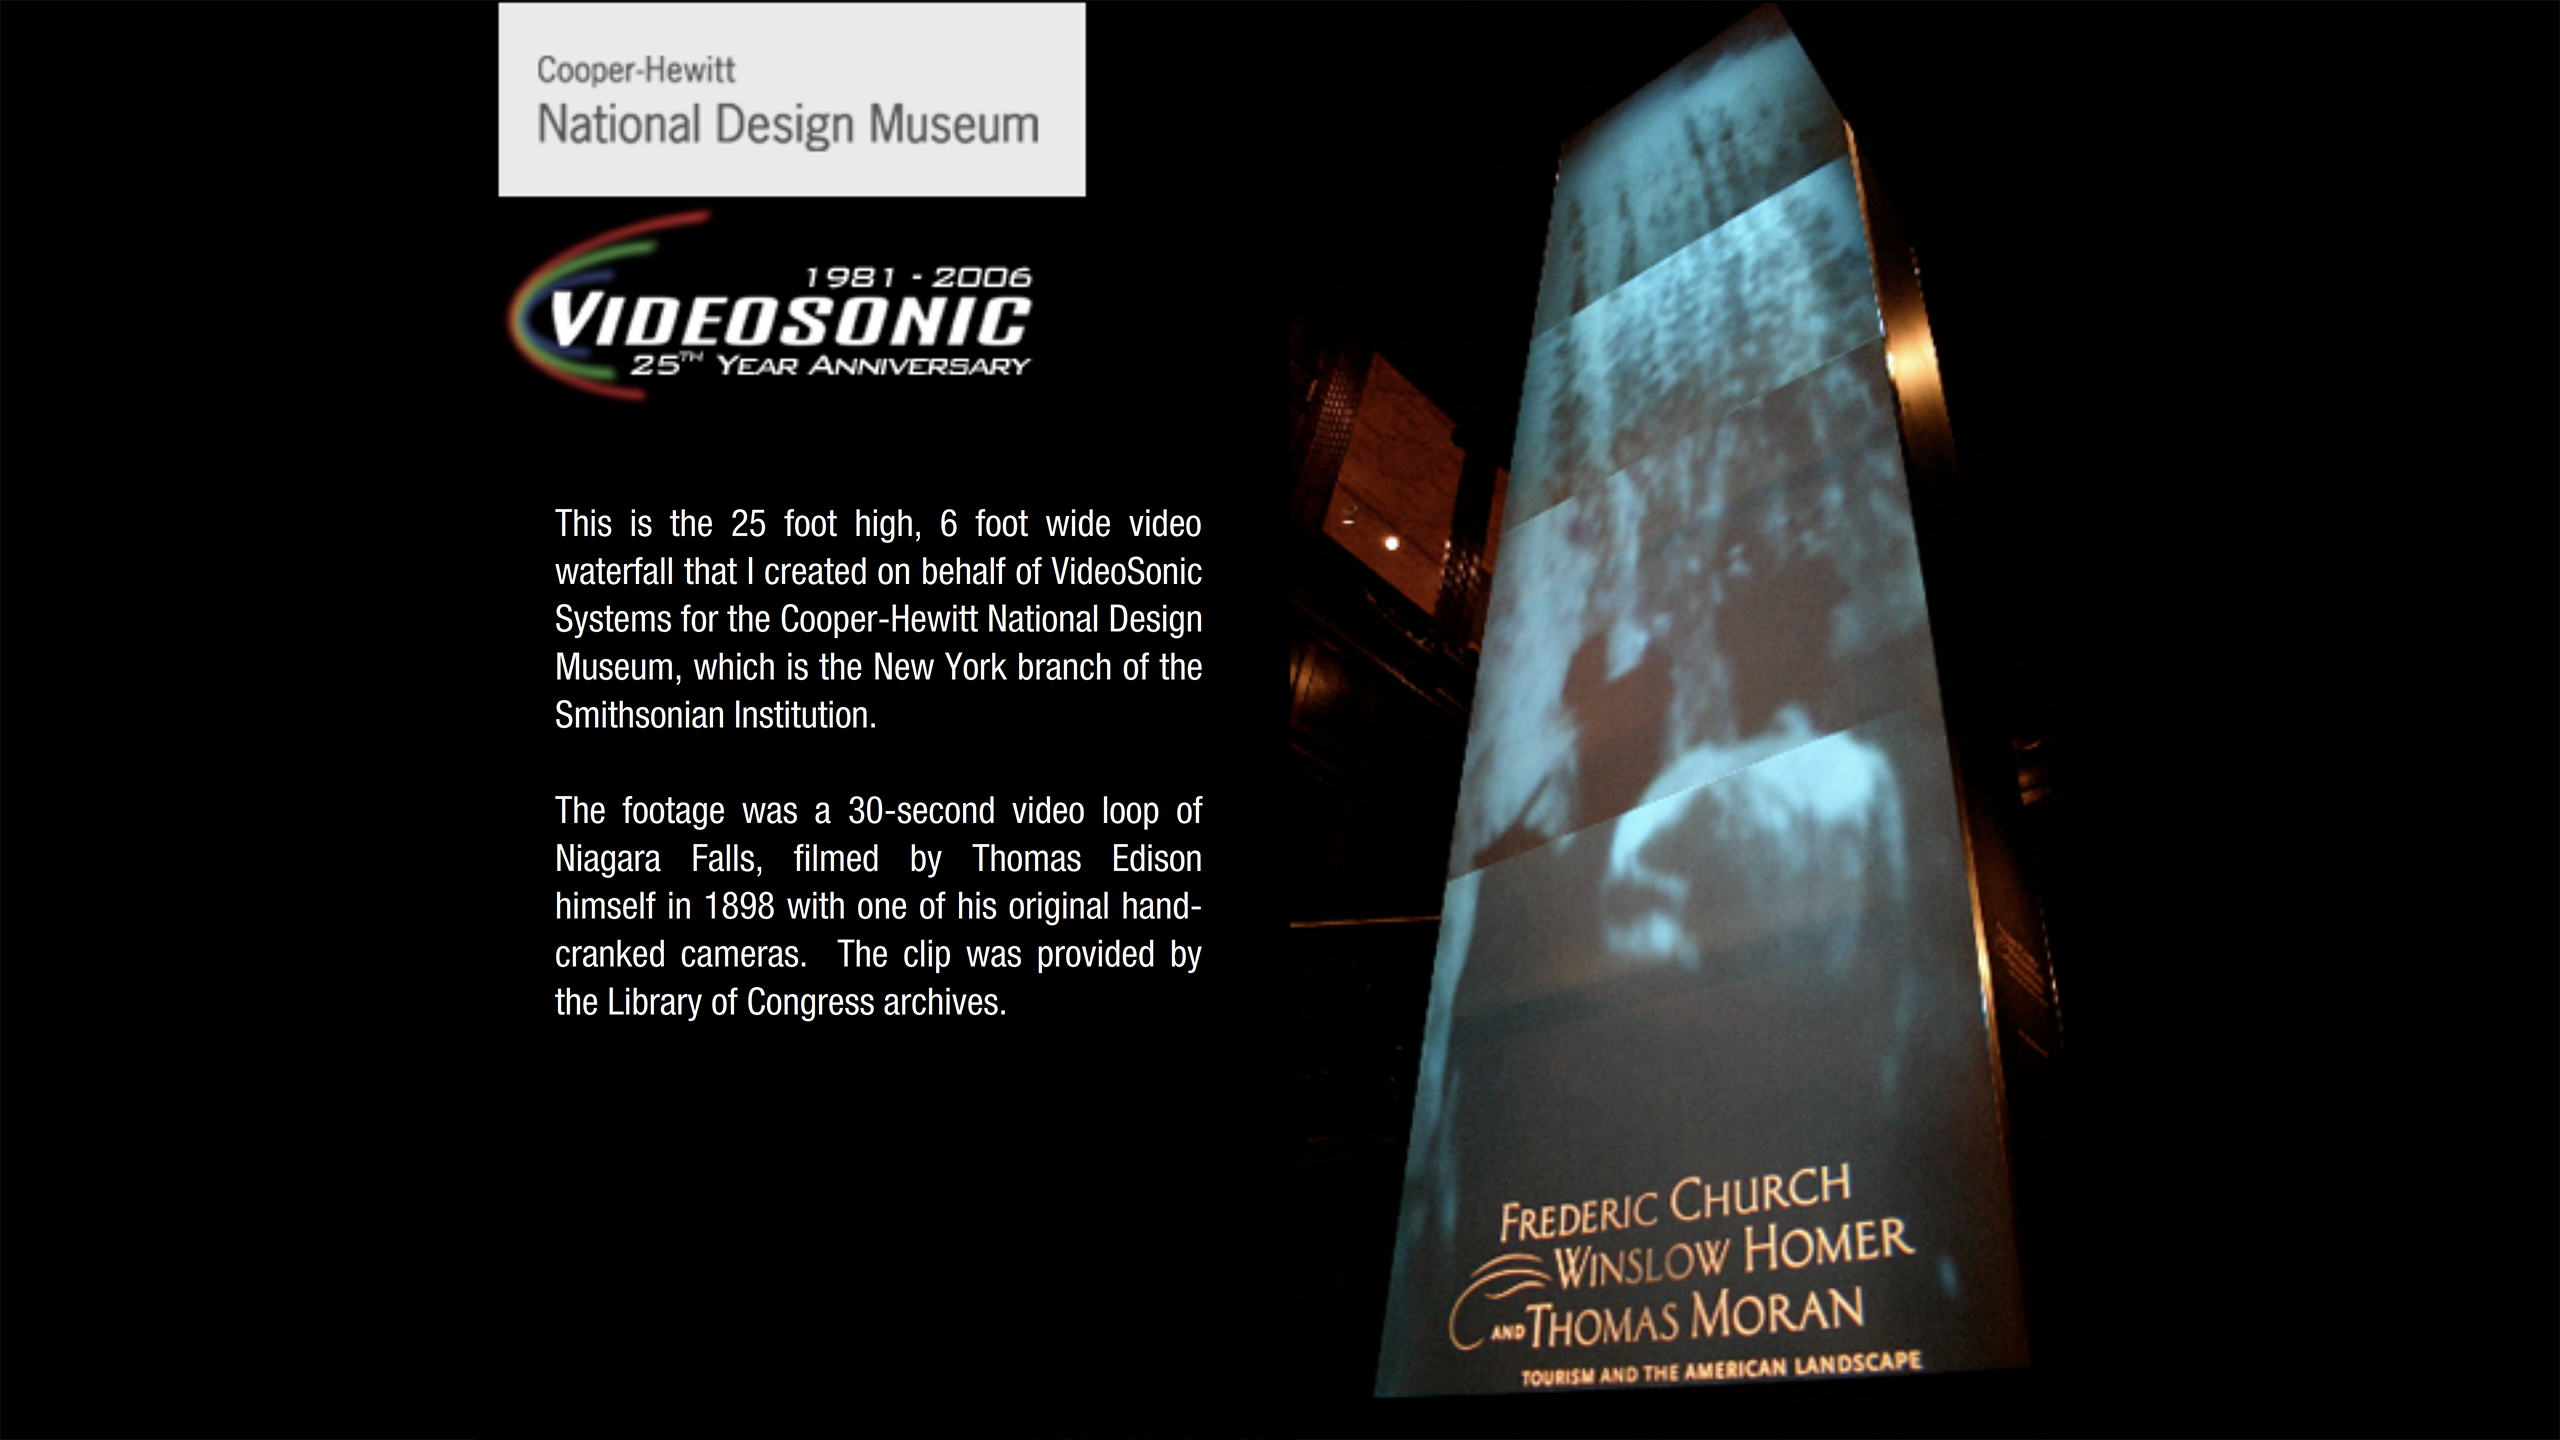 This is the 25 foot high, 6 foot wide video waterfall that I created on behalf of VideoSonic Systems for the Cooper– Hewitt National Design Museum, which is the New York branch of the Smithsonian Institution. The footage was a 30–second video loop of Niagara Falls, filmed by Thomas Edison himself in 1898 with one of his original hand-cranked cameras. The clip was provided by the Library of Congress archives.